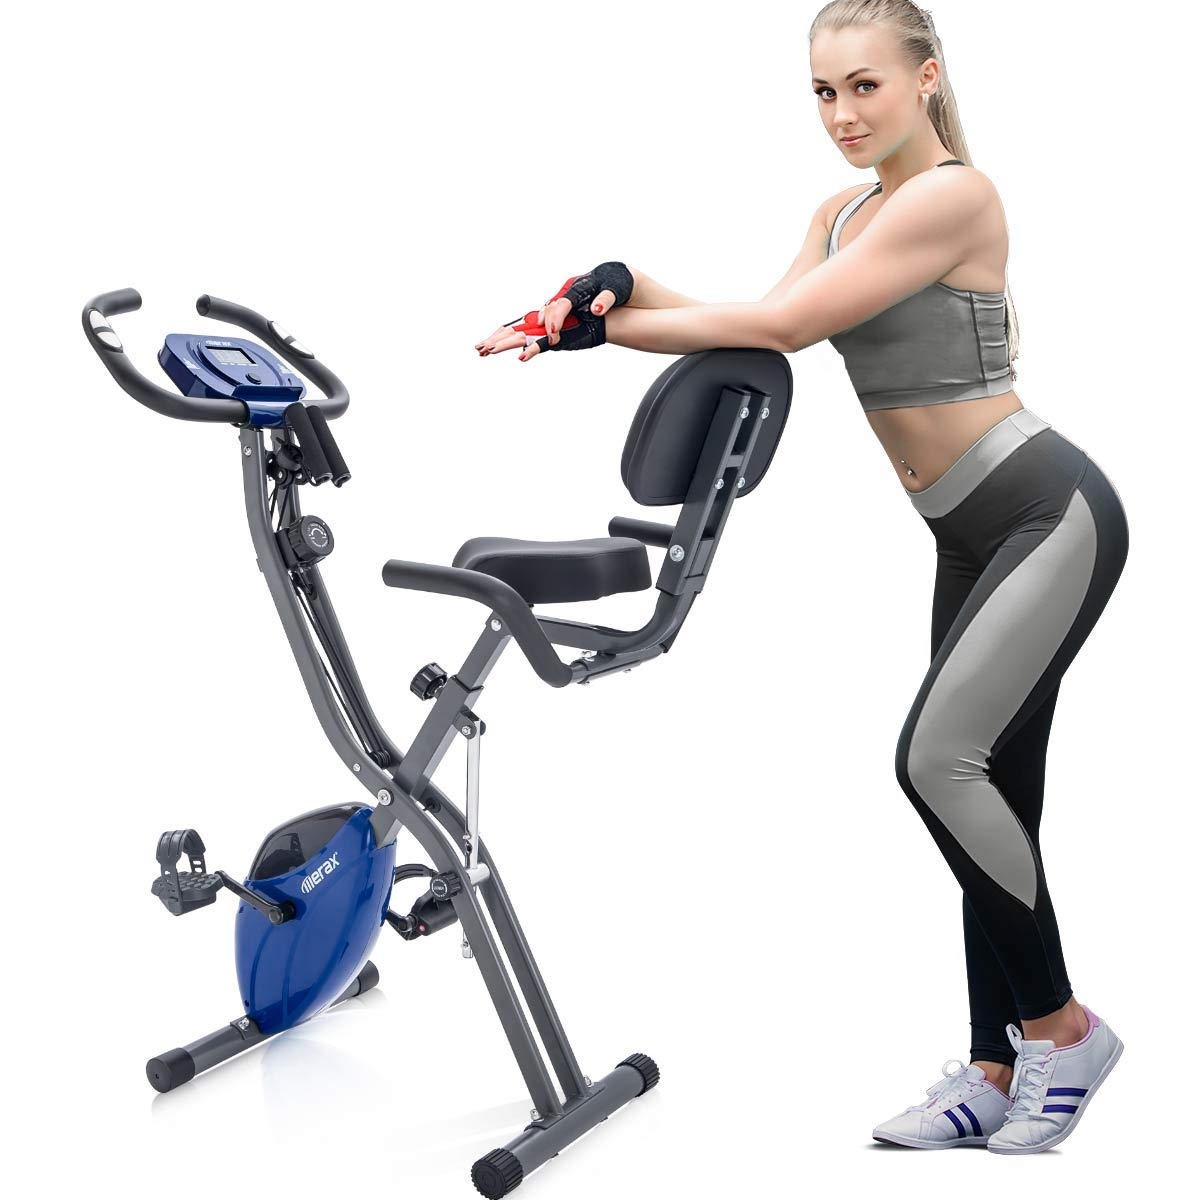 Merax Folding 3 in 1 Adjustable Exercise Bike Convertible Magnetic Upright Recumbent Bike with Arm Bands (Gray+Blue)